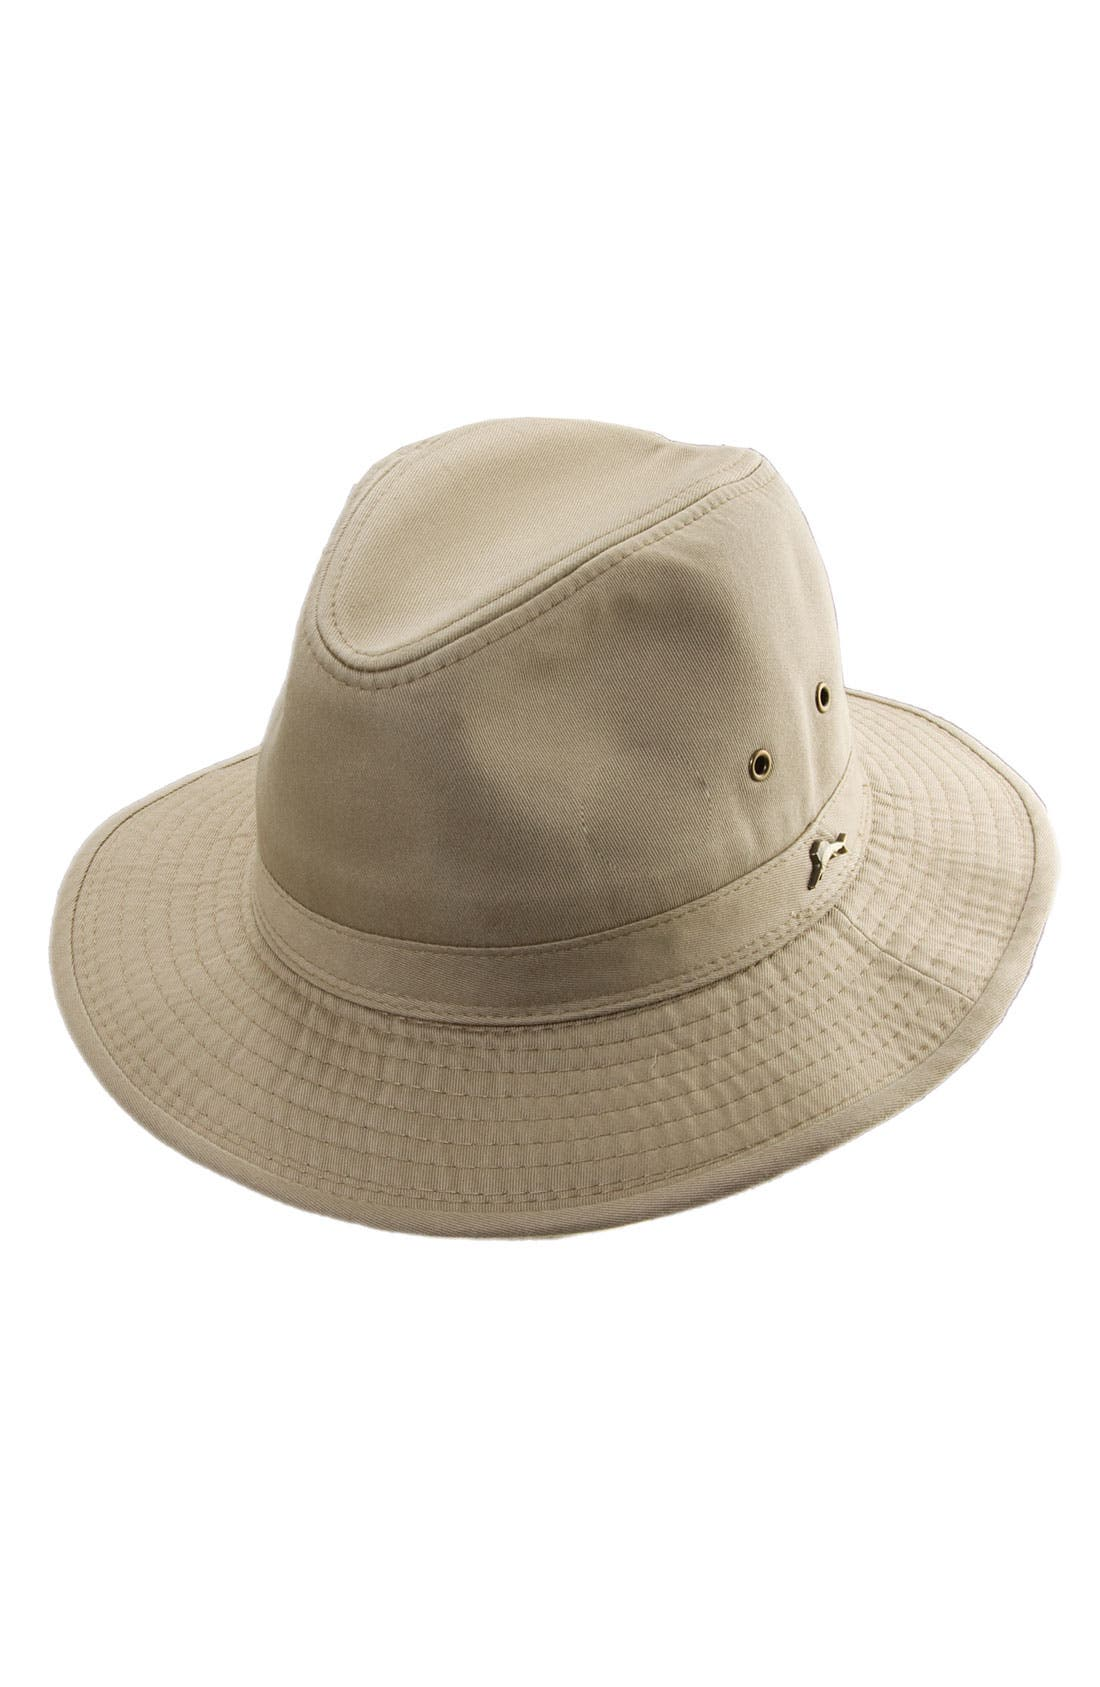 Alternate Image 1 Selected - Tommy Bahama Cotton Safari Bucket Hat